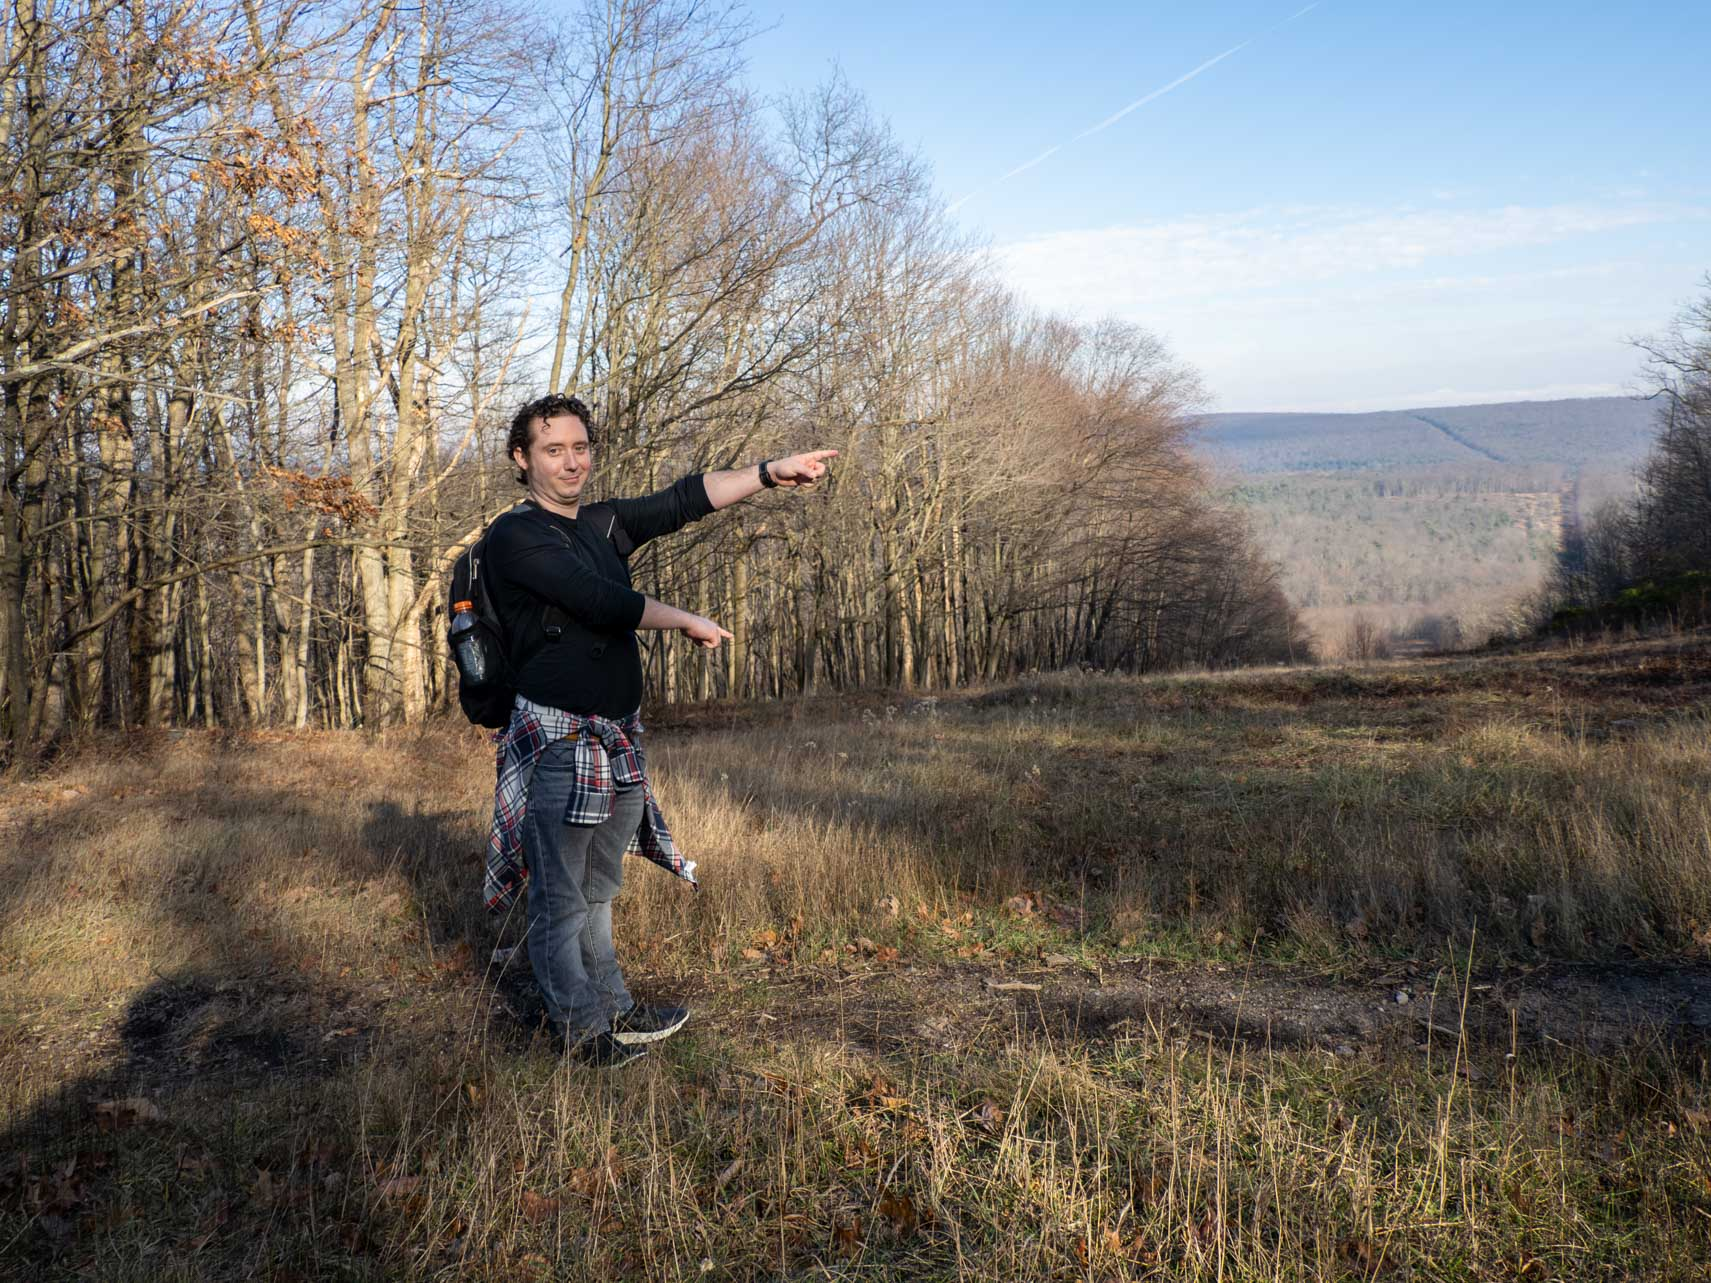 Andrew points at a clearing formed when part of the forest was felled for power lines.